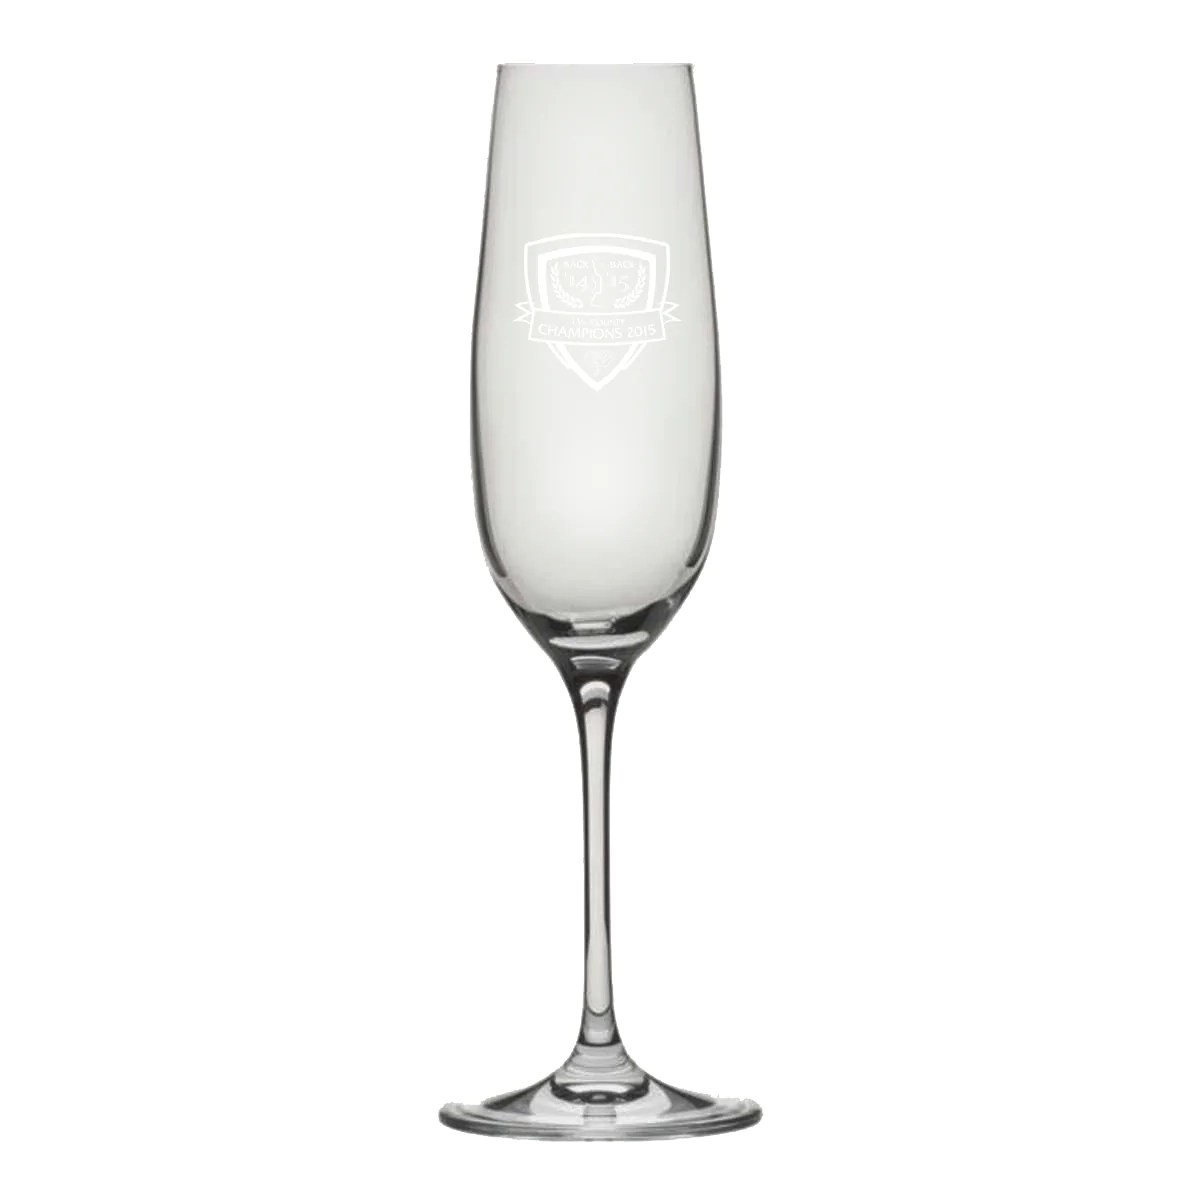 Club Cricket Champions 2015 Champagne Flute – Yorkshire County Cricket Club